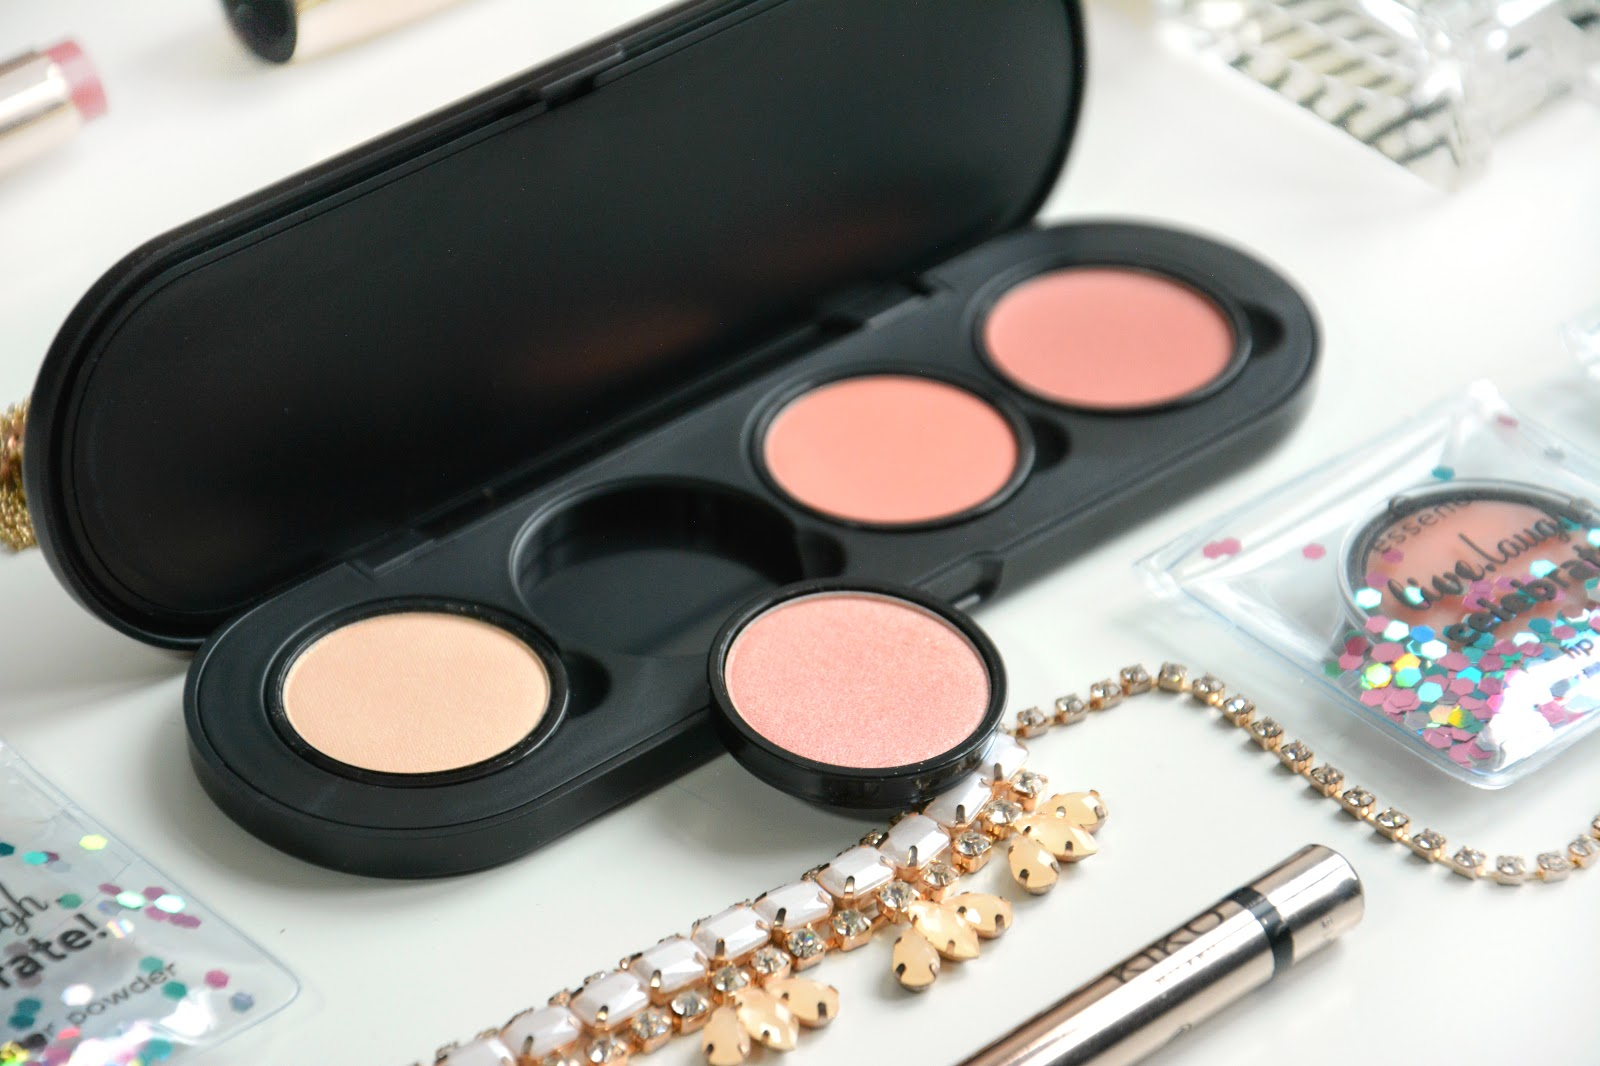 Essence My Must Haves Palette, Essence My Must Haves Highlighting Powder 01; Essence My Must Haves Soft Shimmer Blush 01; Essence My Must Haves Soft Satin Blush 01; Essence My Must Haves Soft Matt Blush 02